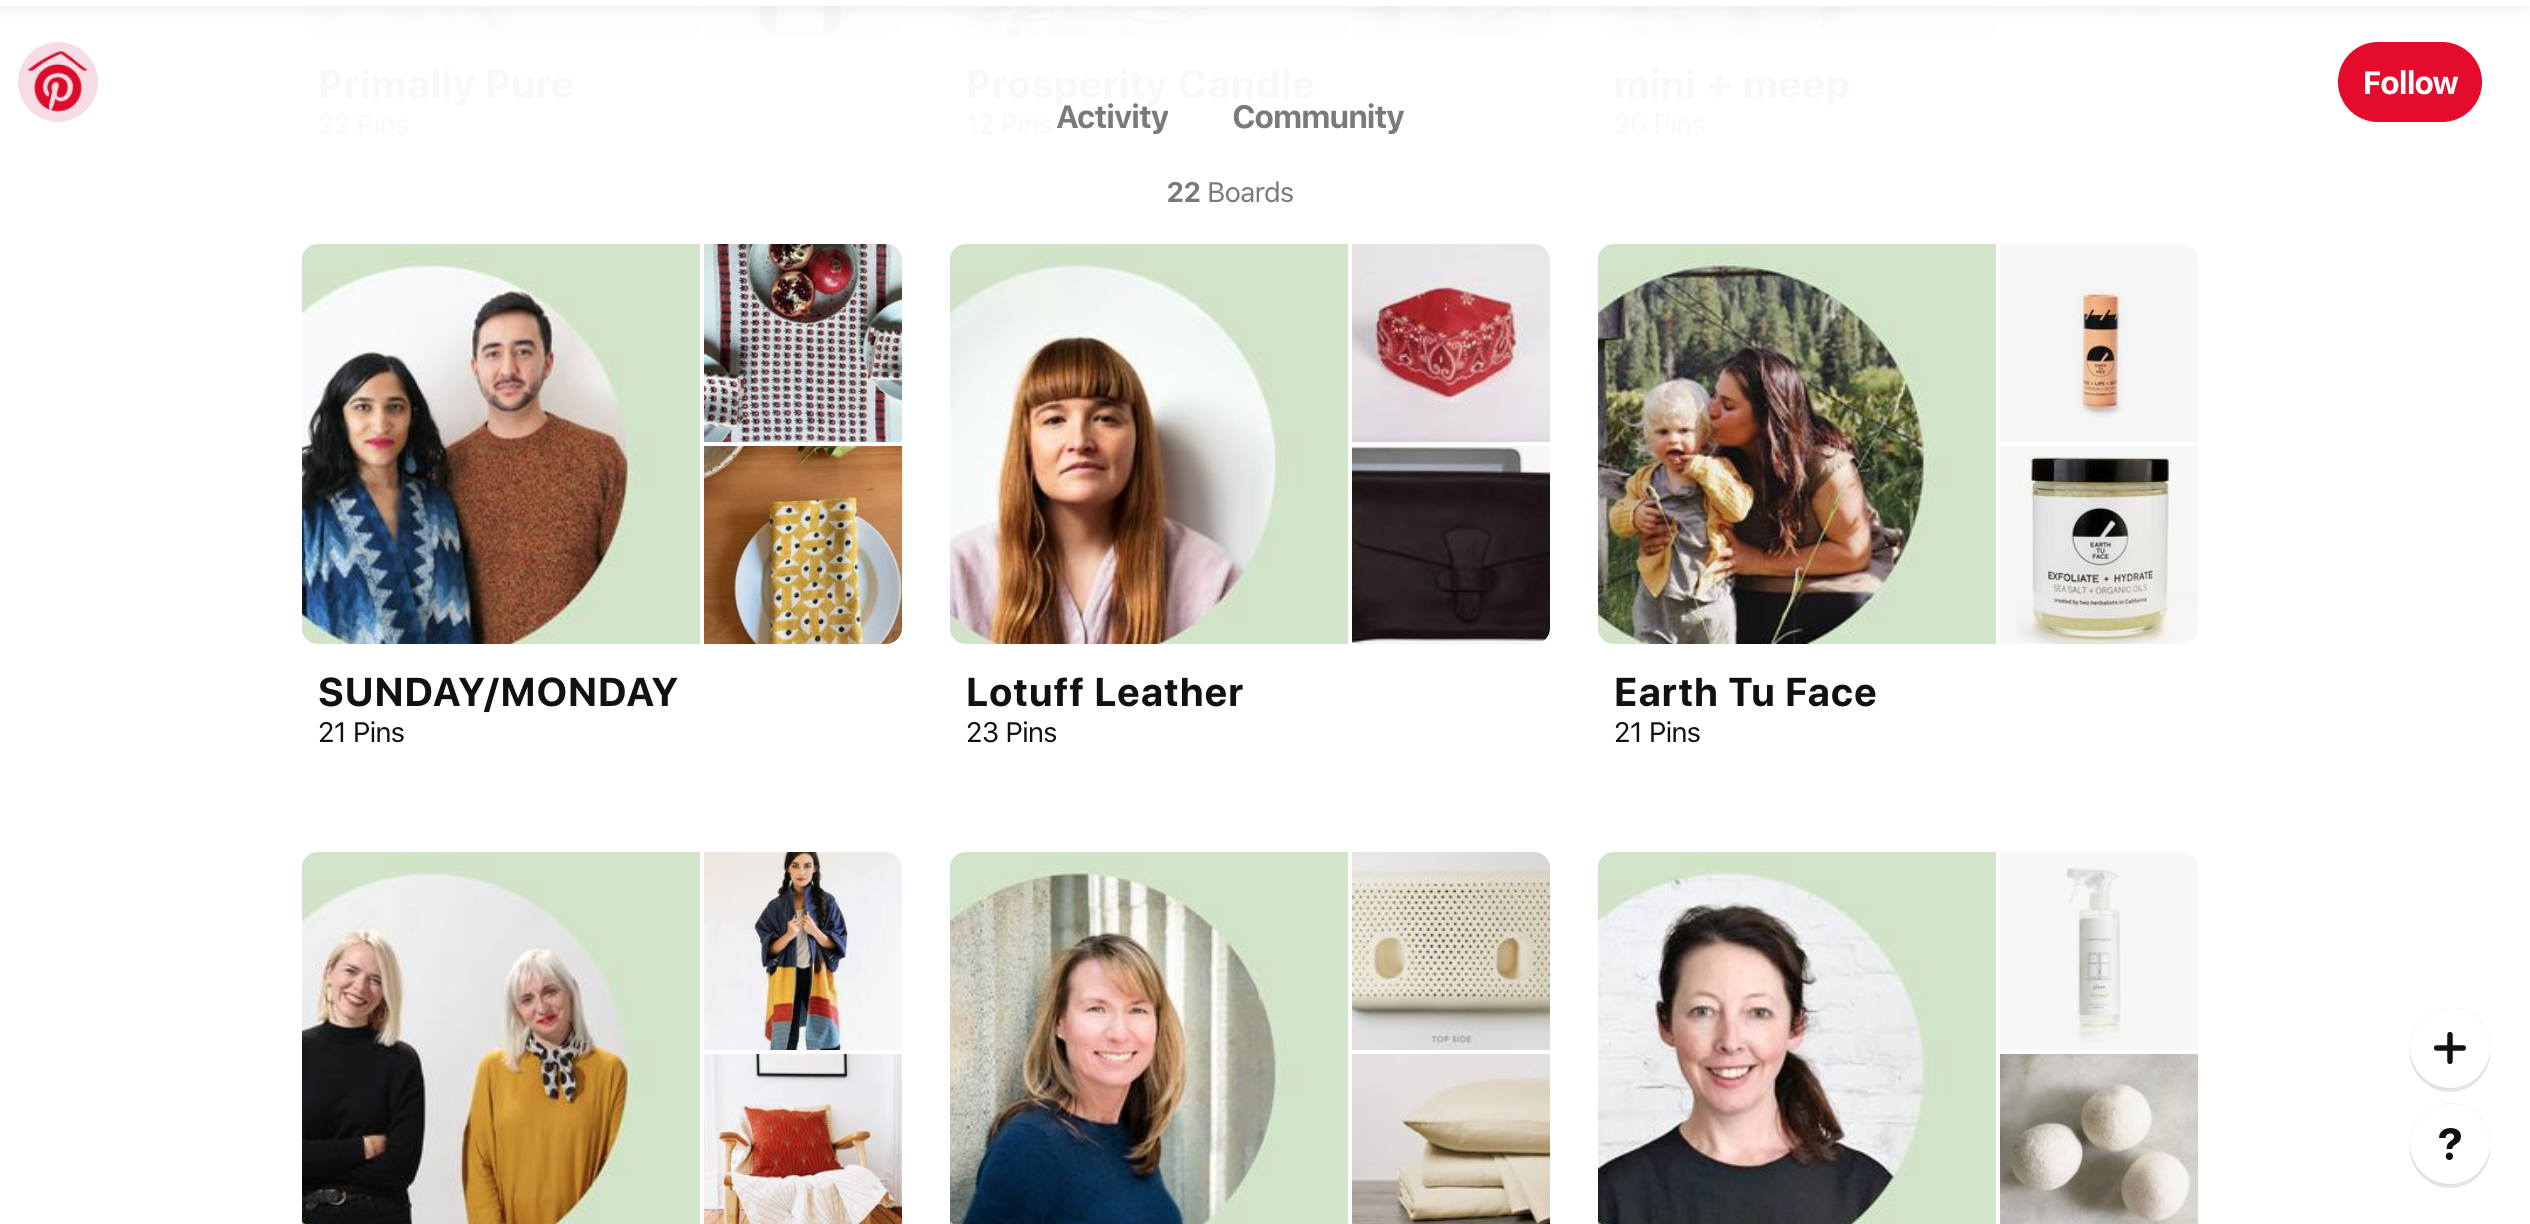 Pinterest moves to support SMBs impacted by COVID-19